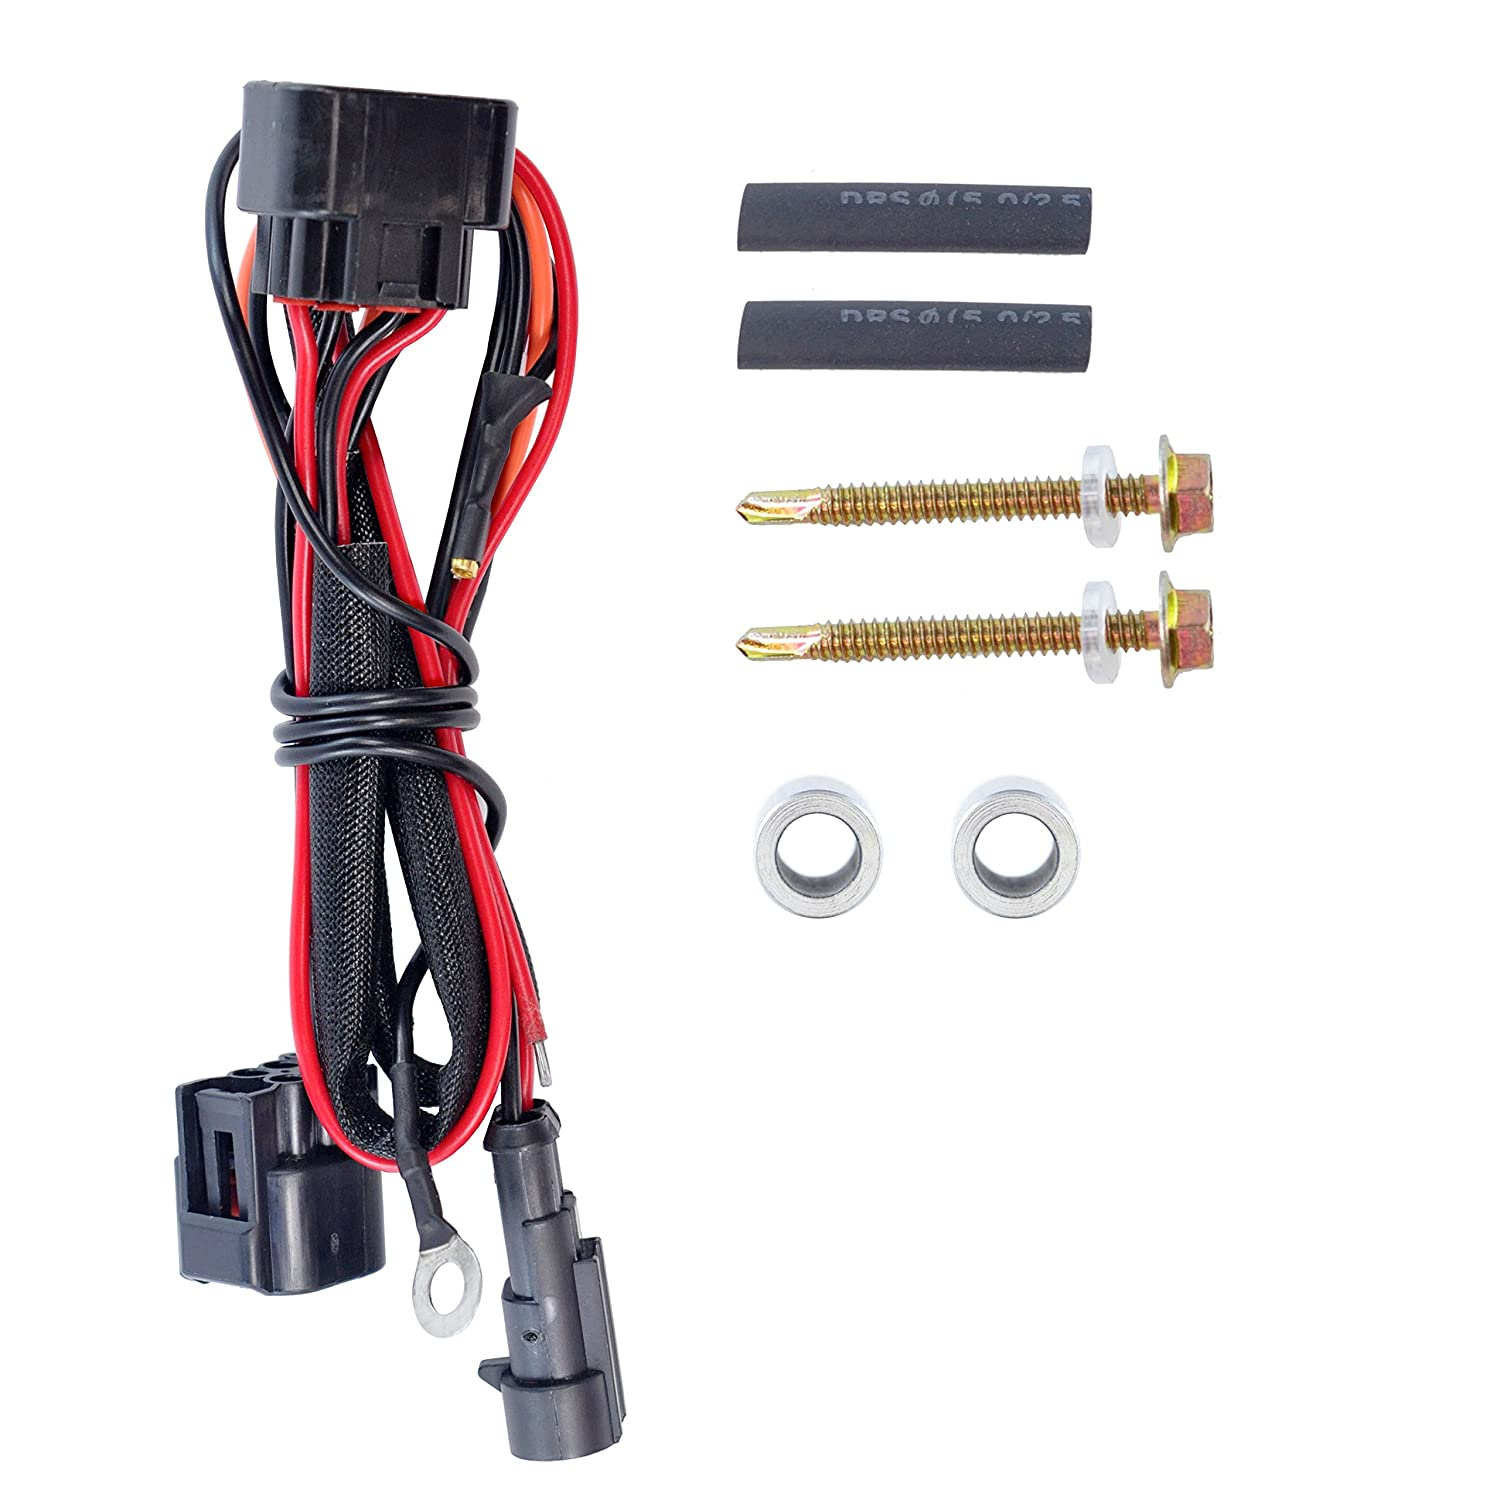 Cdi Box Ignition Upgrade Stator Kit By Rmstator Atv Ducati Starter Wiring Parts 2002 2006 For Polaris Sportsman 600 700 Series Automotive